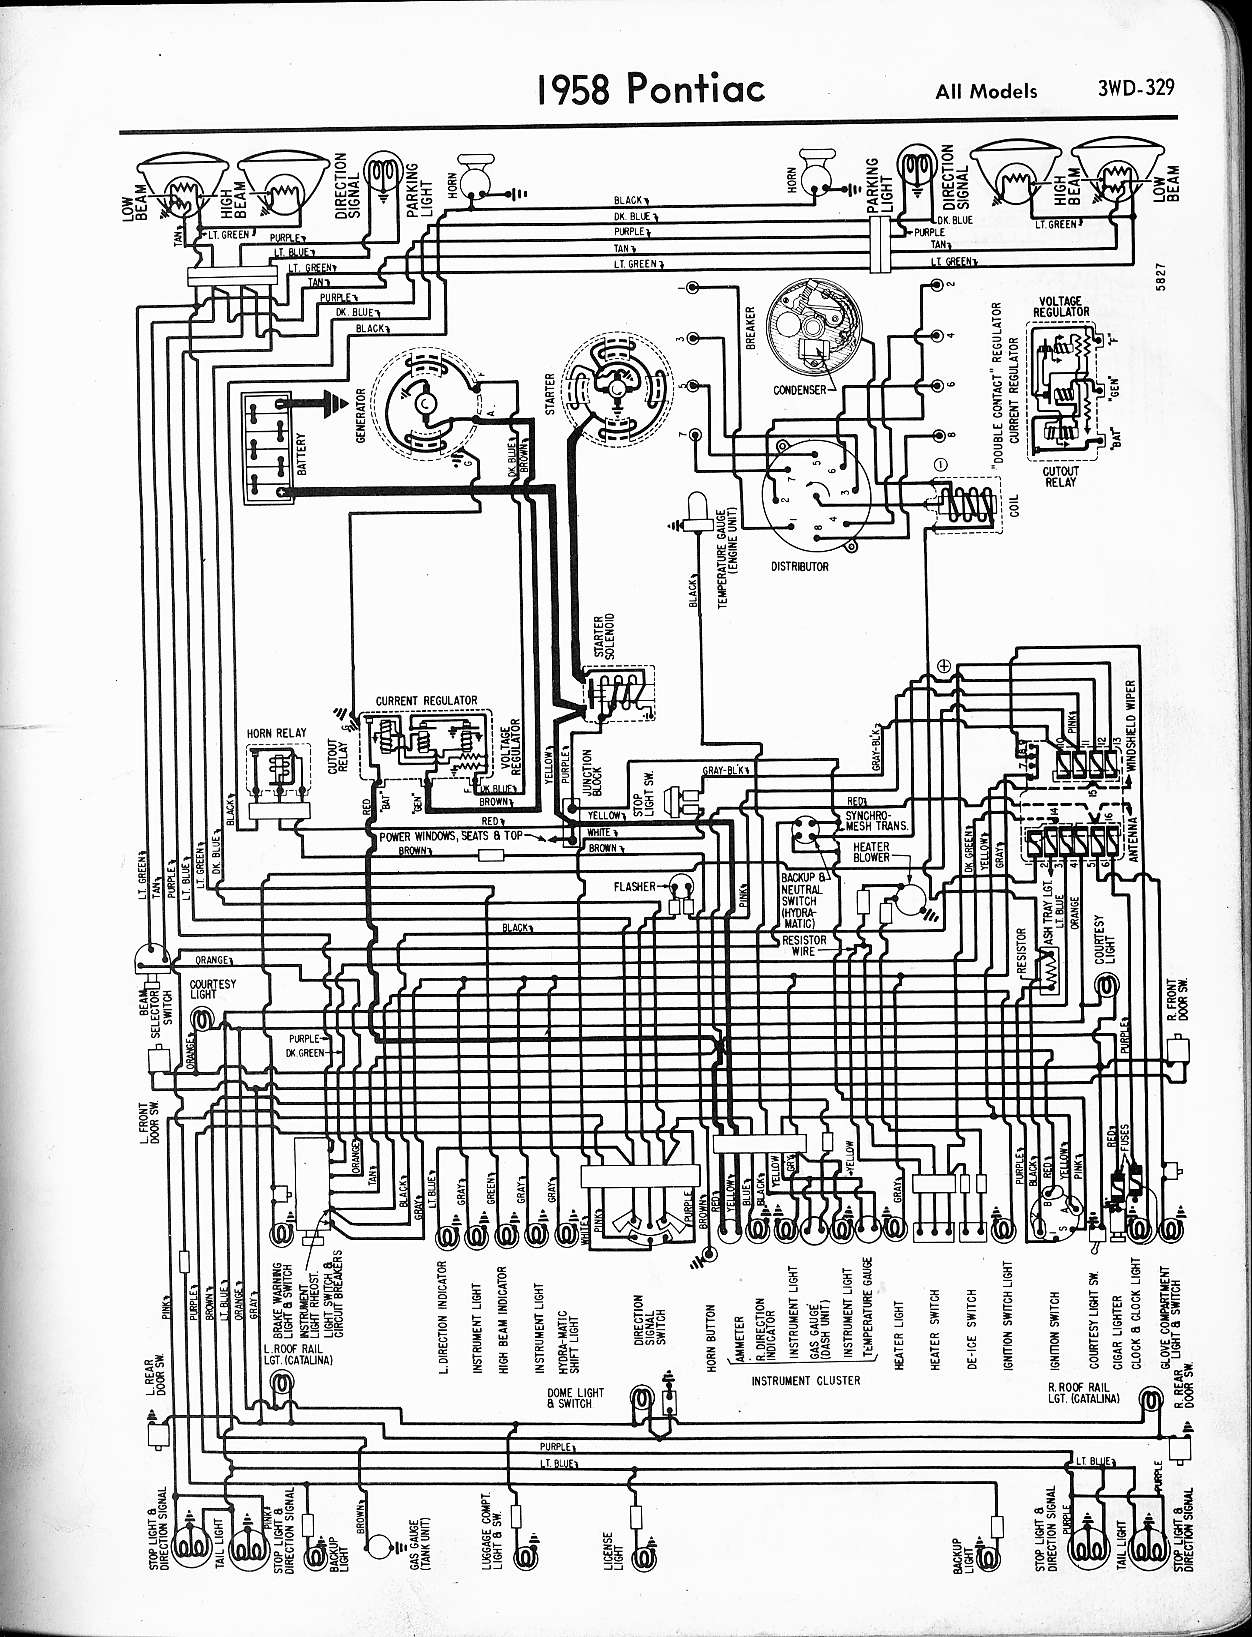 wallace racing wiring diagrams rh wallaceracing com 1984 Pontiac Grand Prix Wiring-Diagram 1984 Pontiac Grand Prix Wiring-Diagram